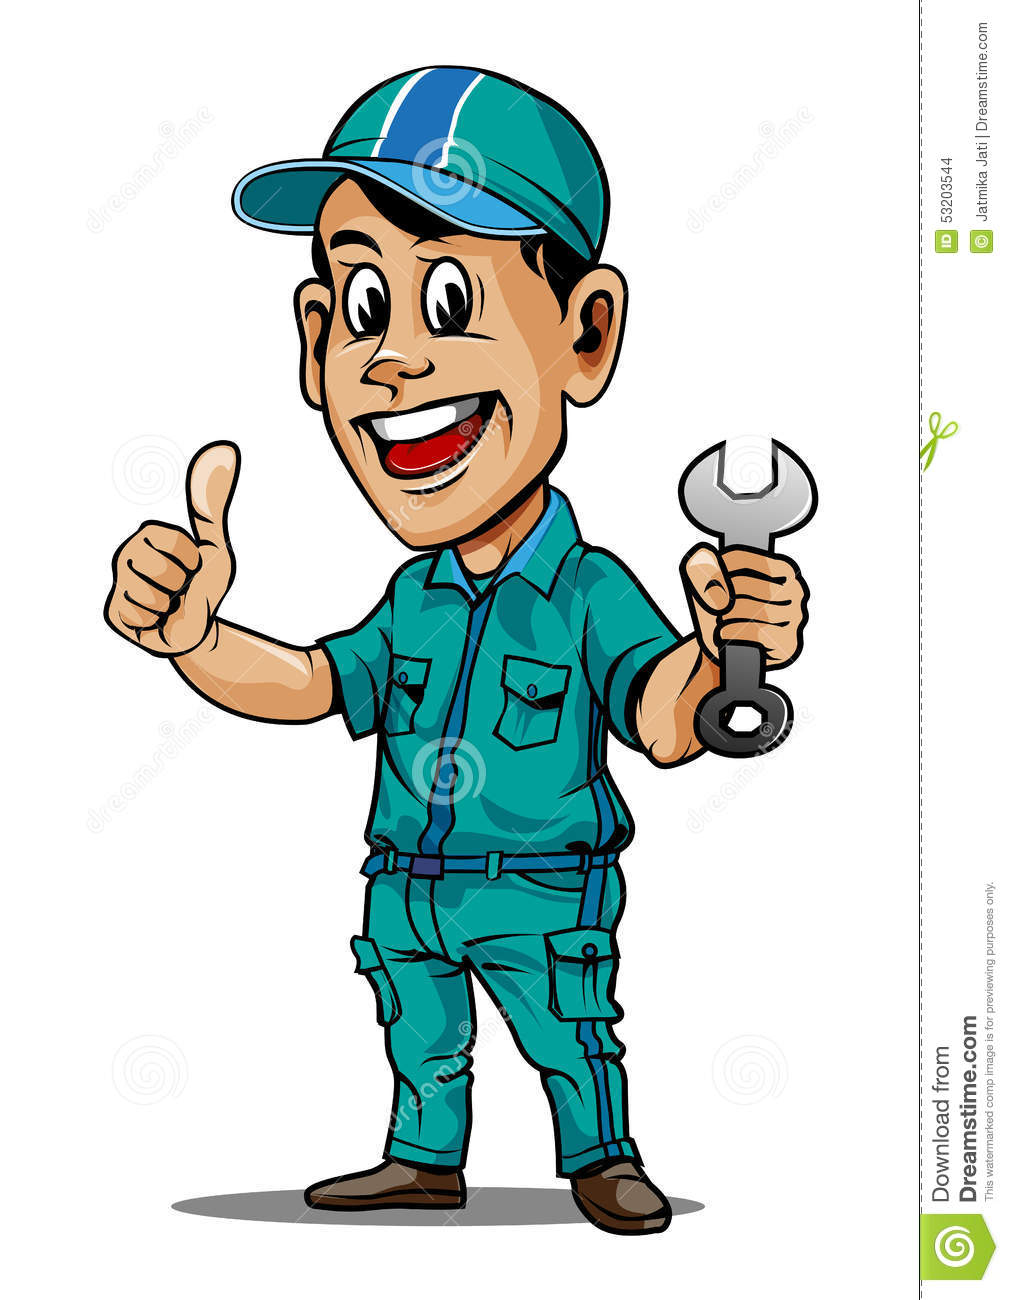 Auto Mechanic Vector Stock Vector - Image: 53203544